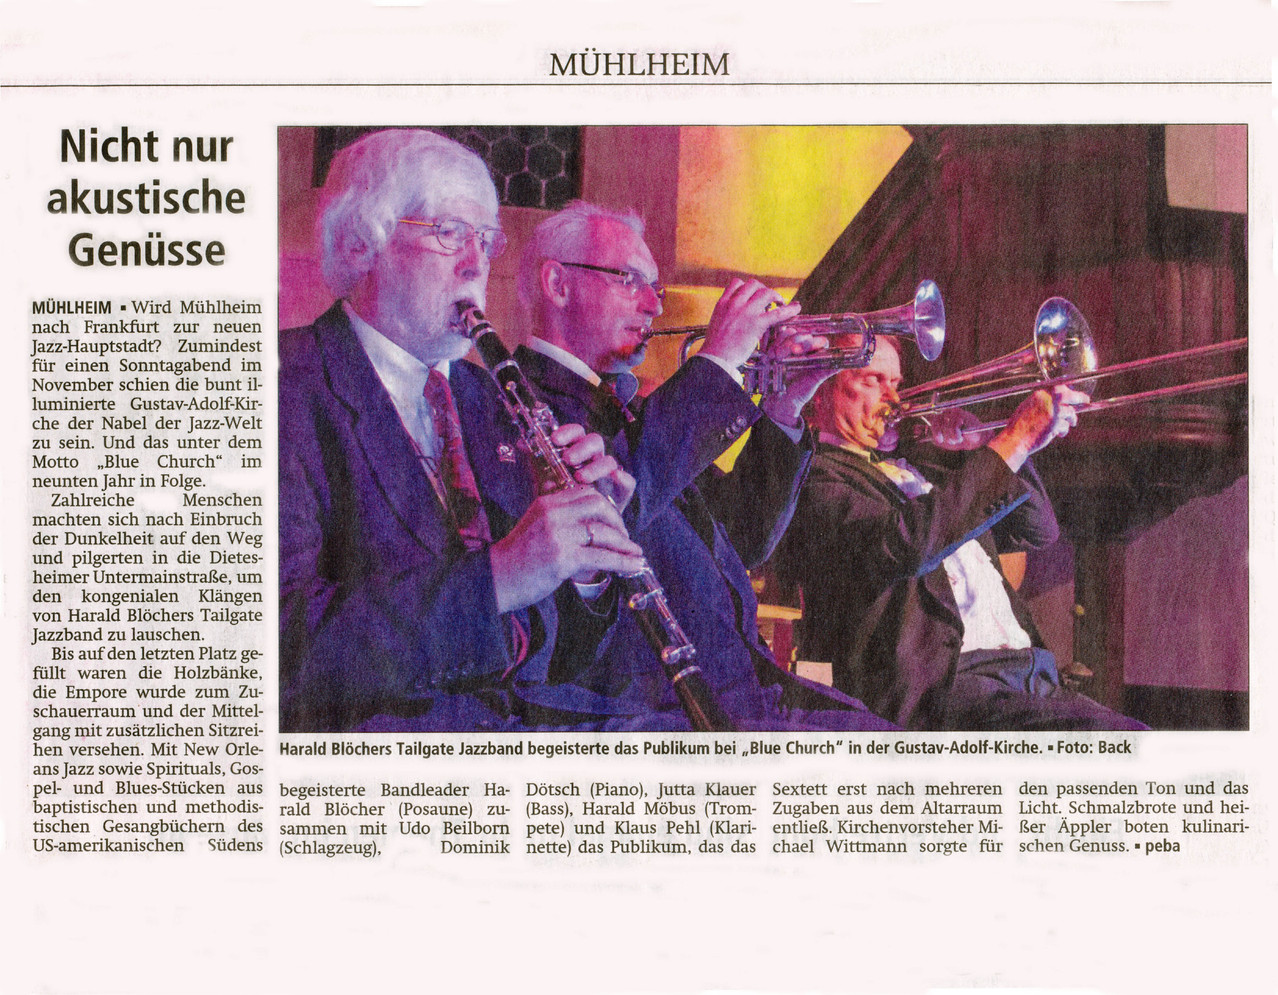 Offenbach Post, 20. November 2013